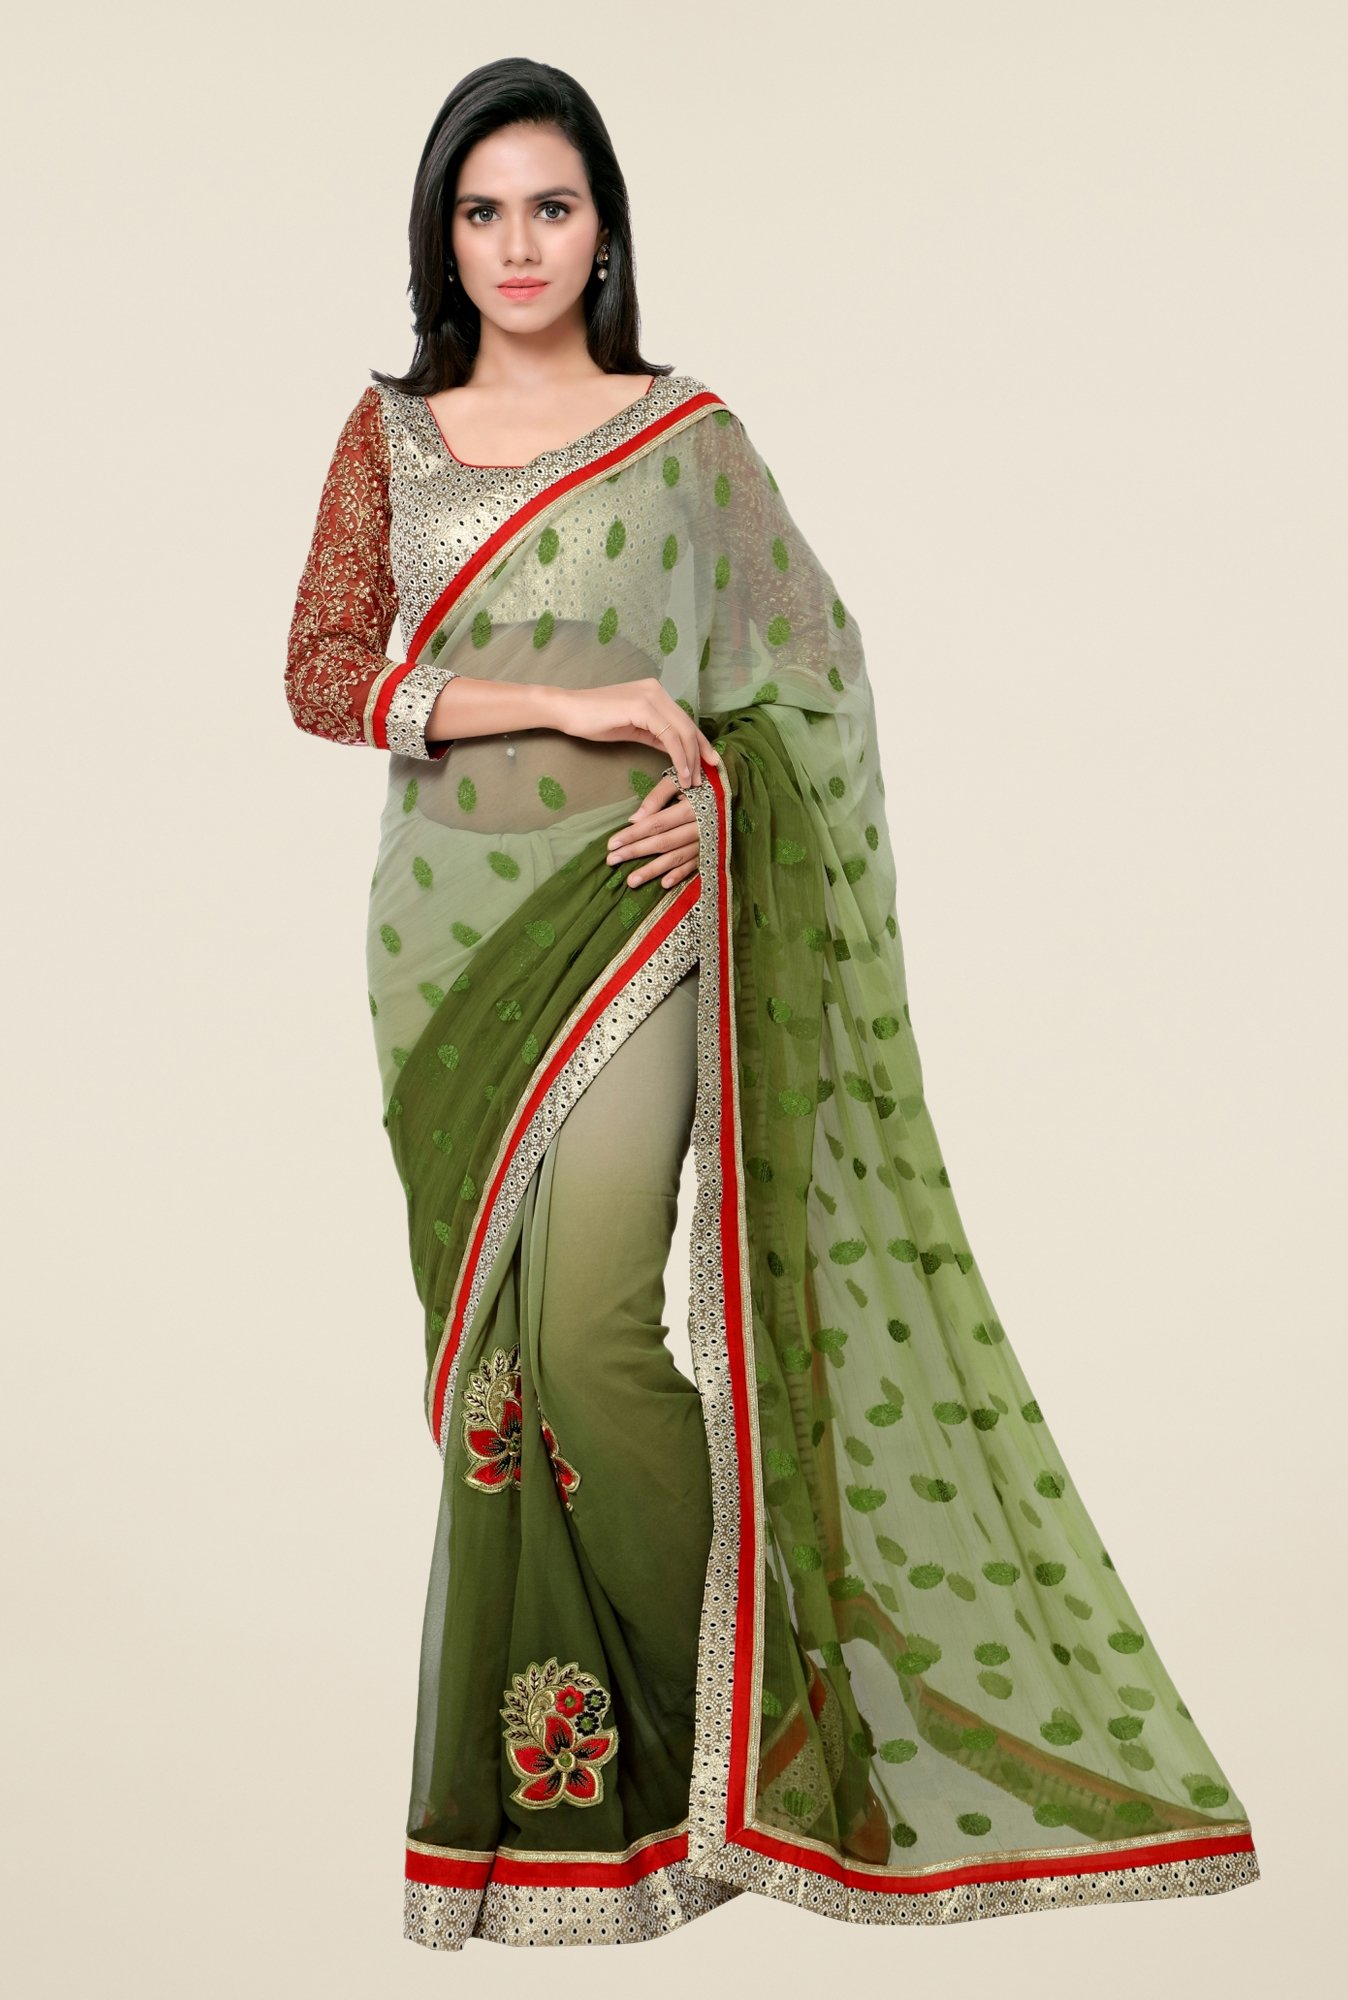 Triveni Green Printed Georgette Jacquard Saree